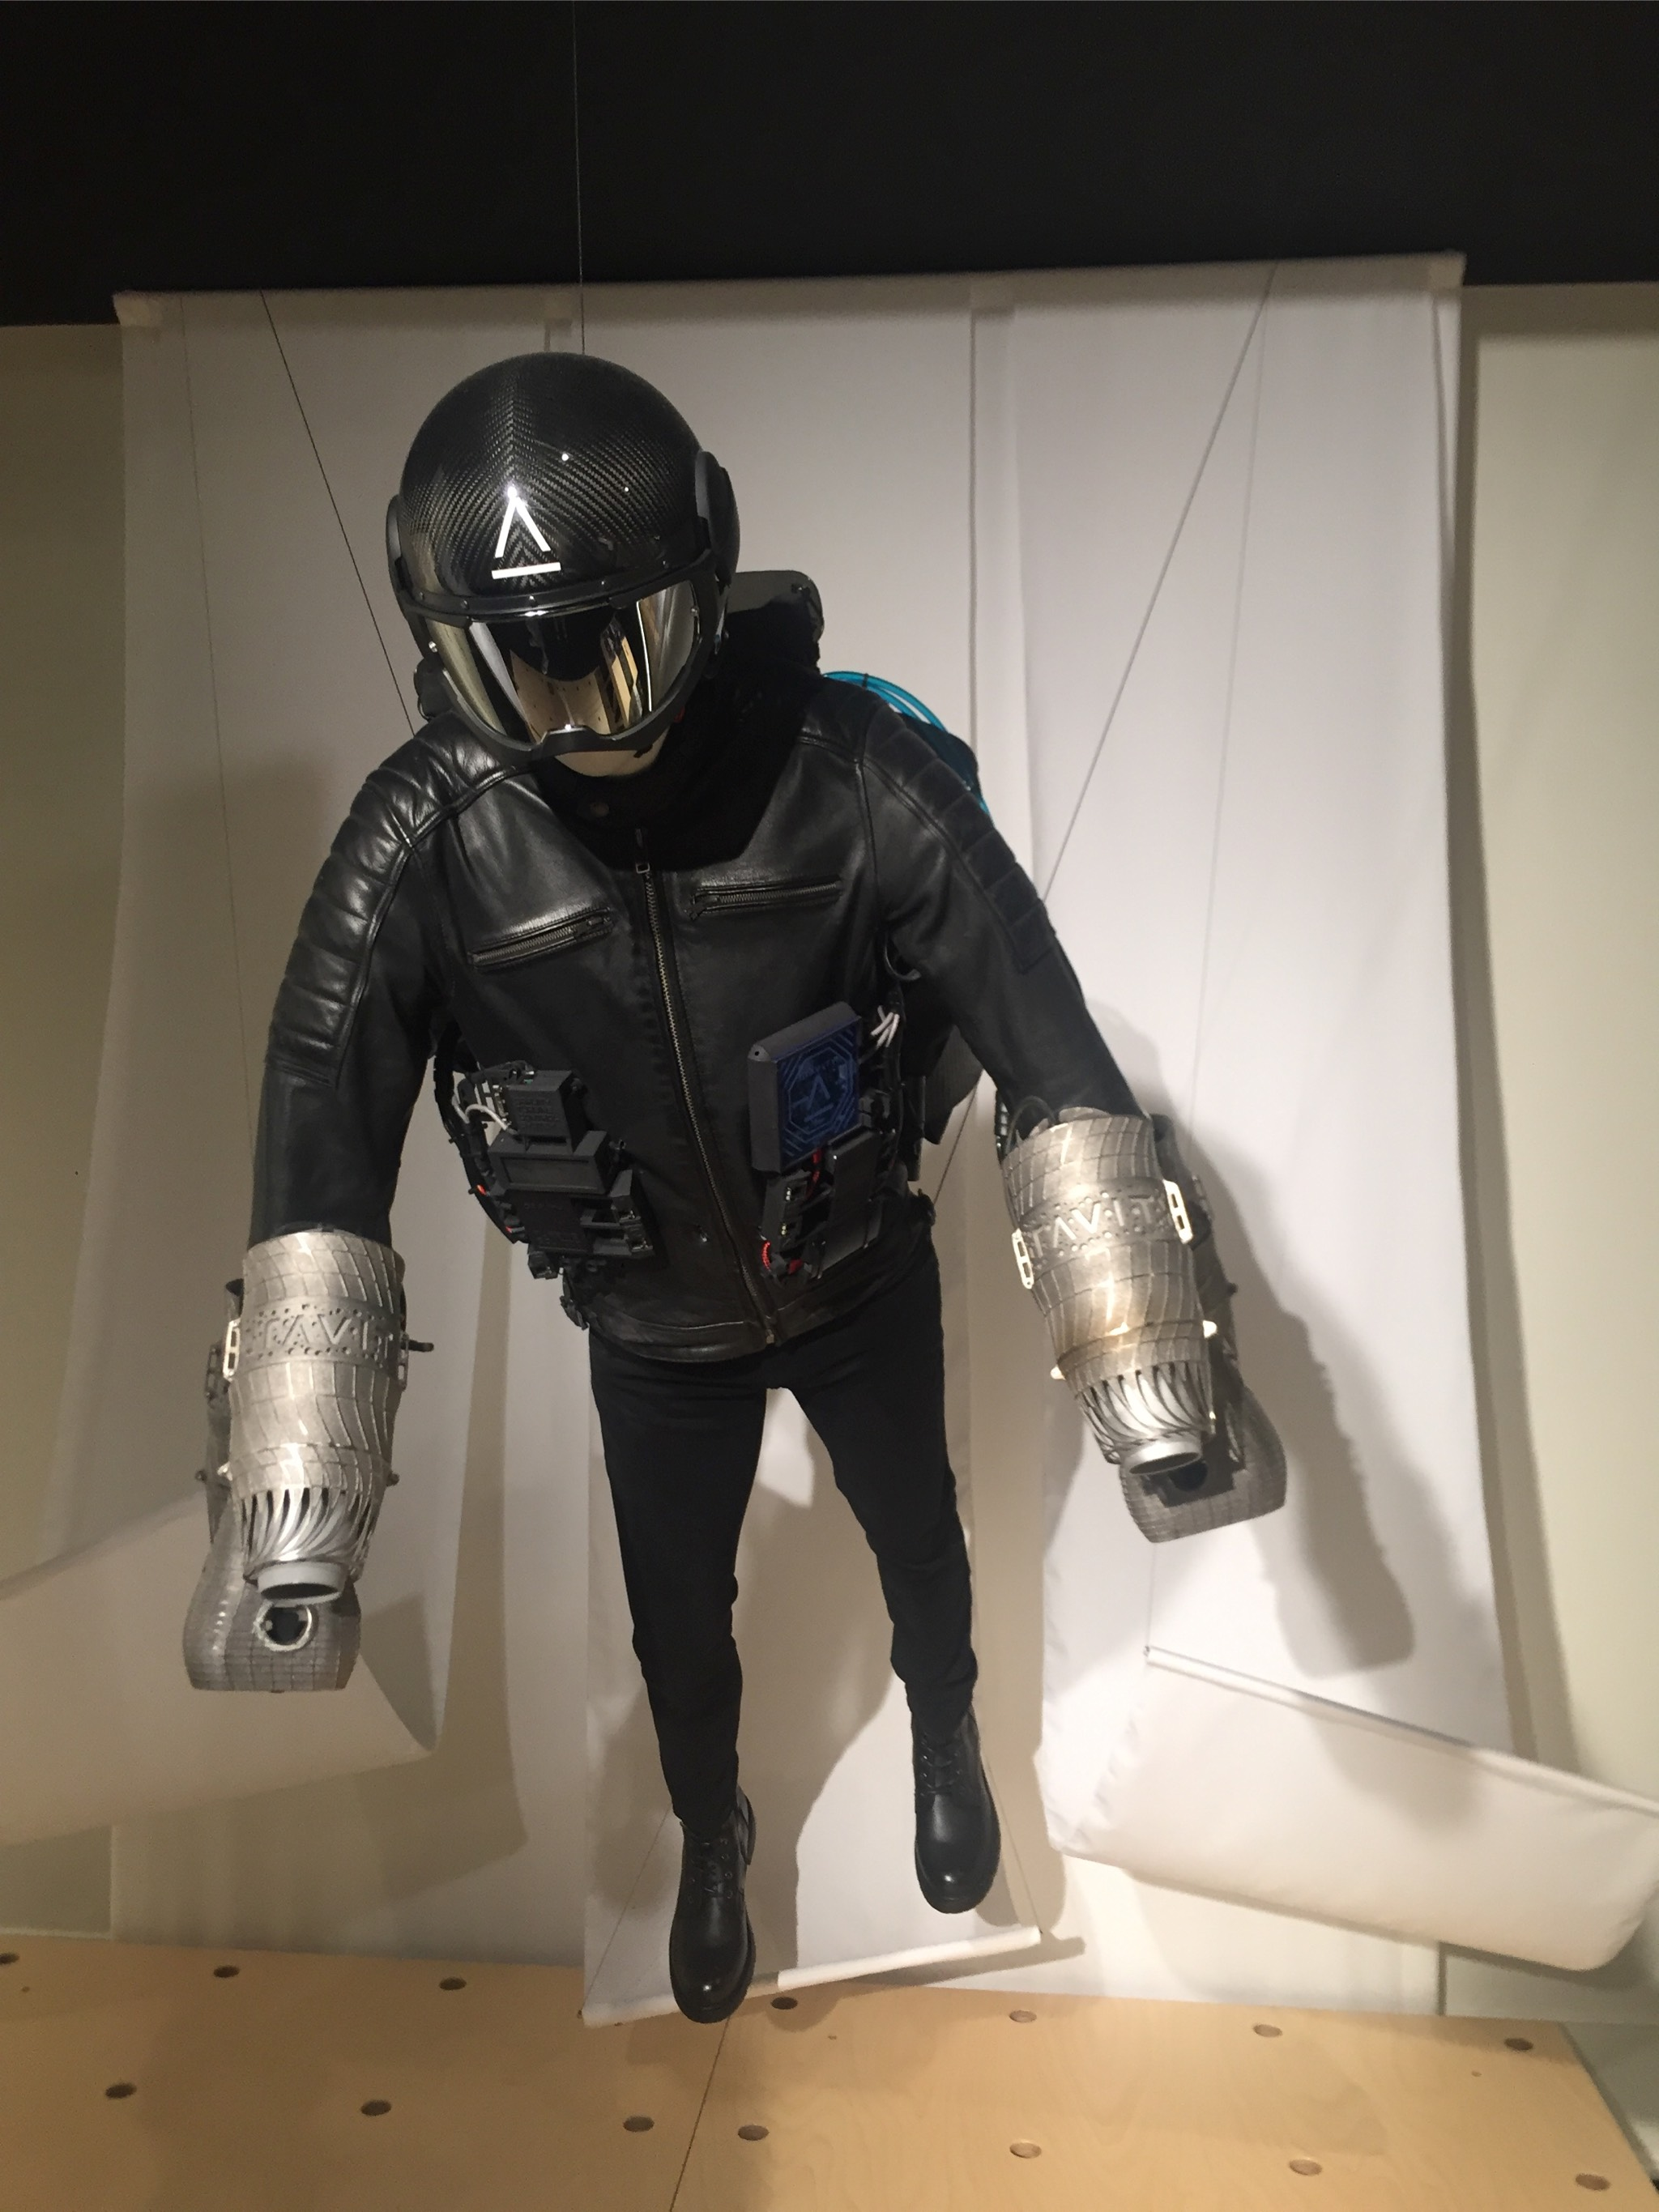 Created by Richard Browning, chief test pilot and founder, this Jet Suit can travel more than 30 miles per hour and ascend to 12,000 feet.